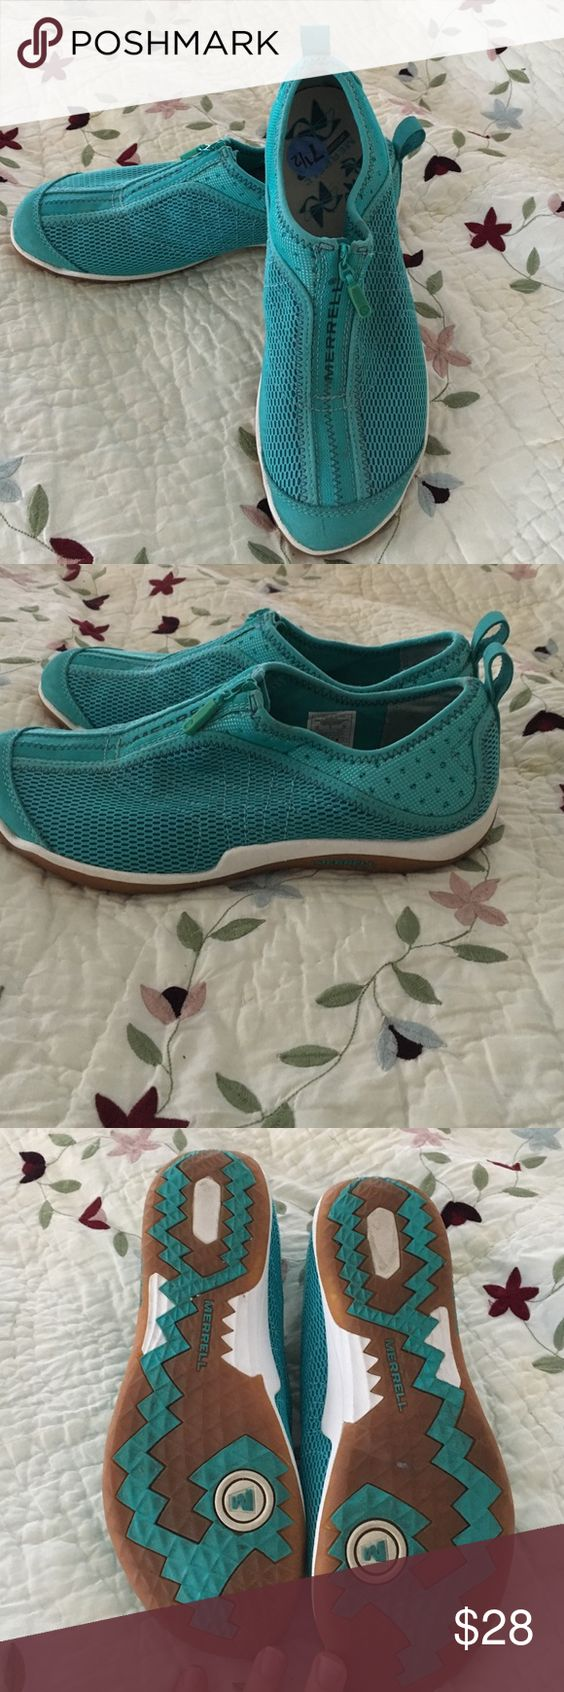 Merrill shoes, slip on . Brand new , never worn Merrill shoes . Size 7 1/2. Merrell Shoes Flats & Loafers